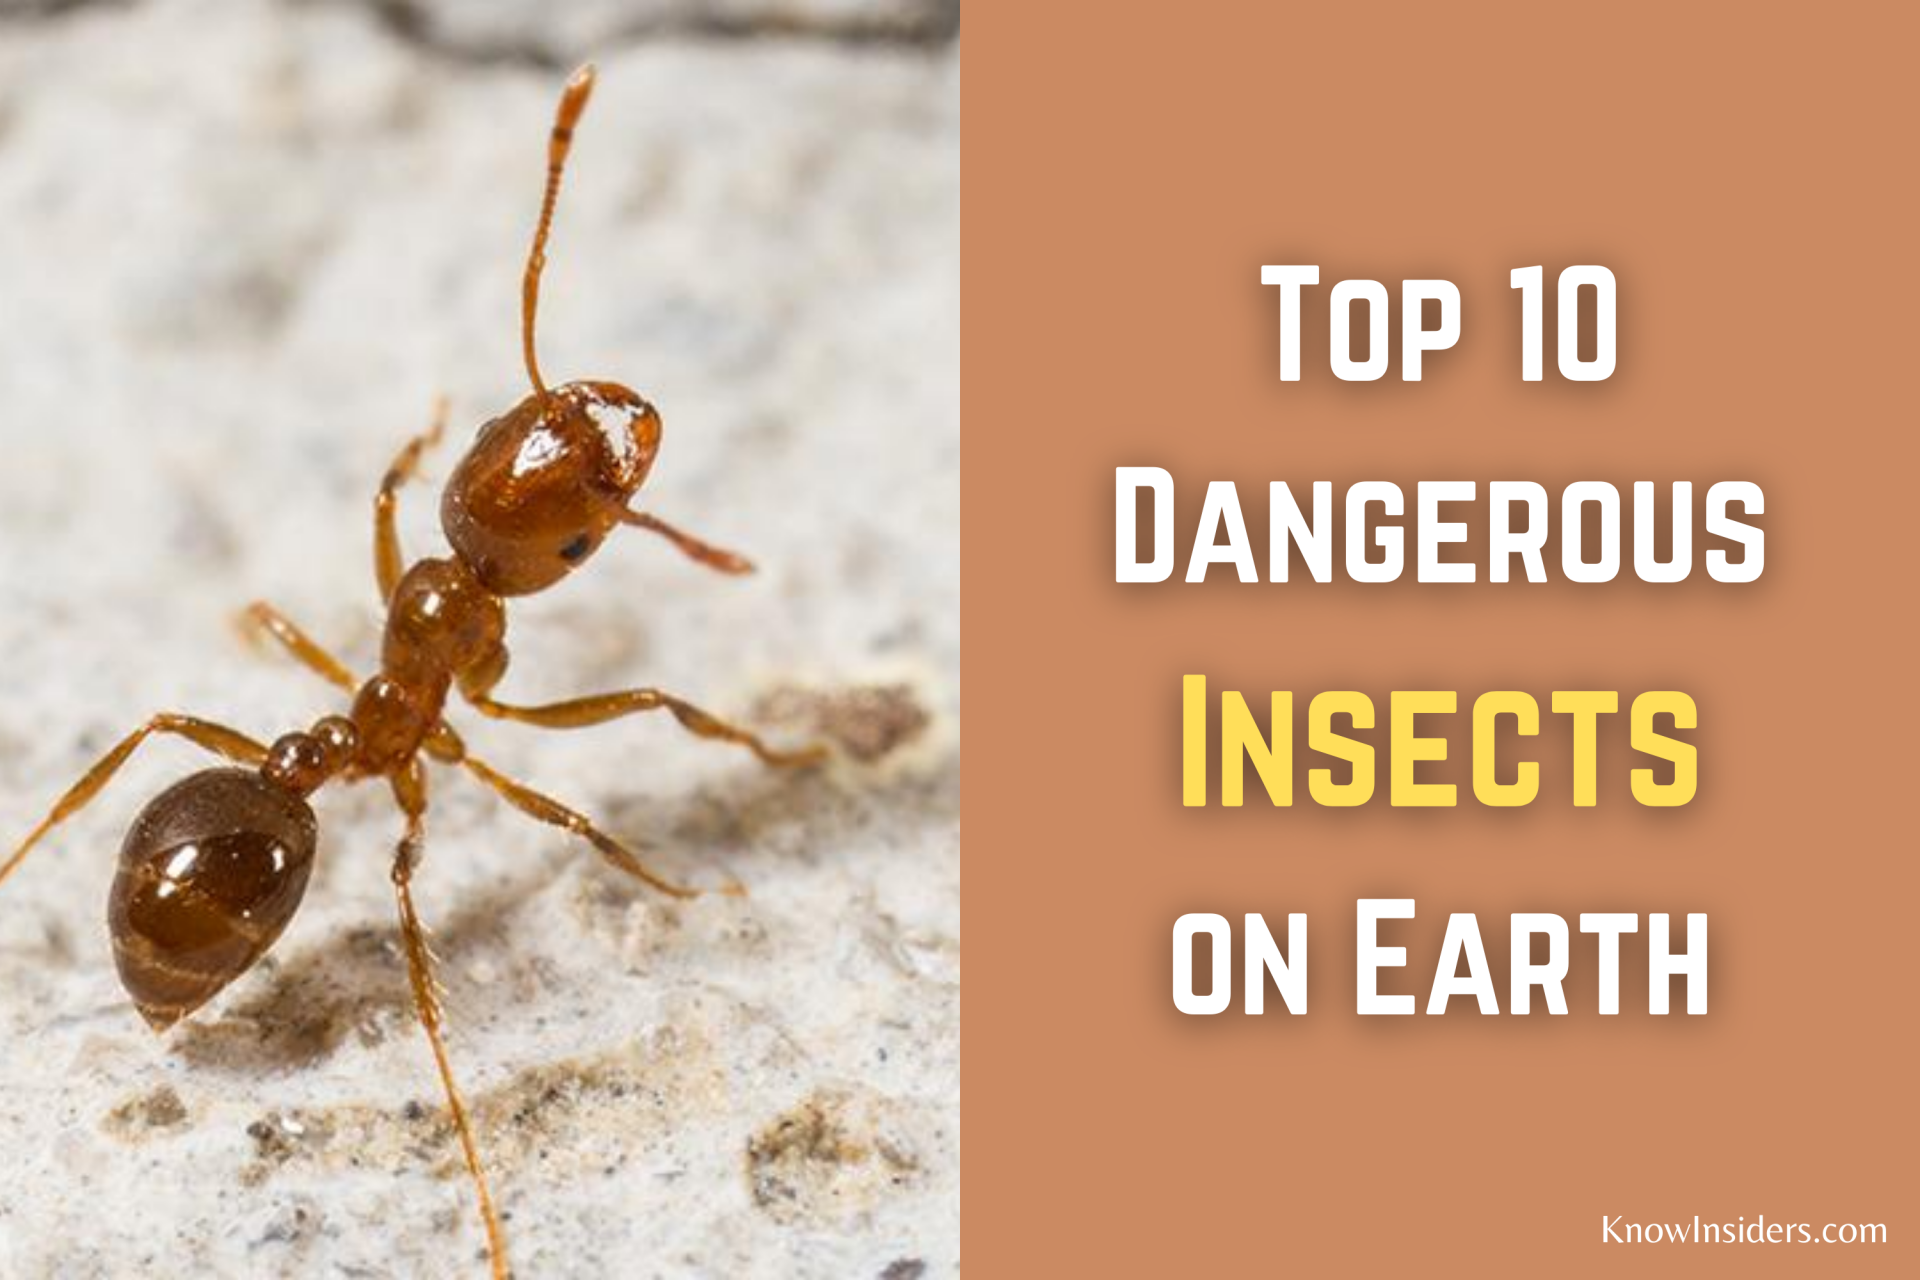 Top 10 Most Dangerous Insects in the World